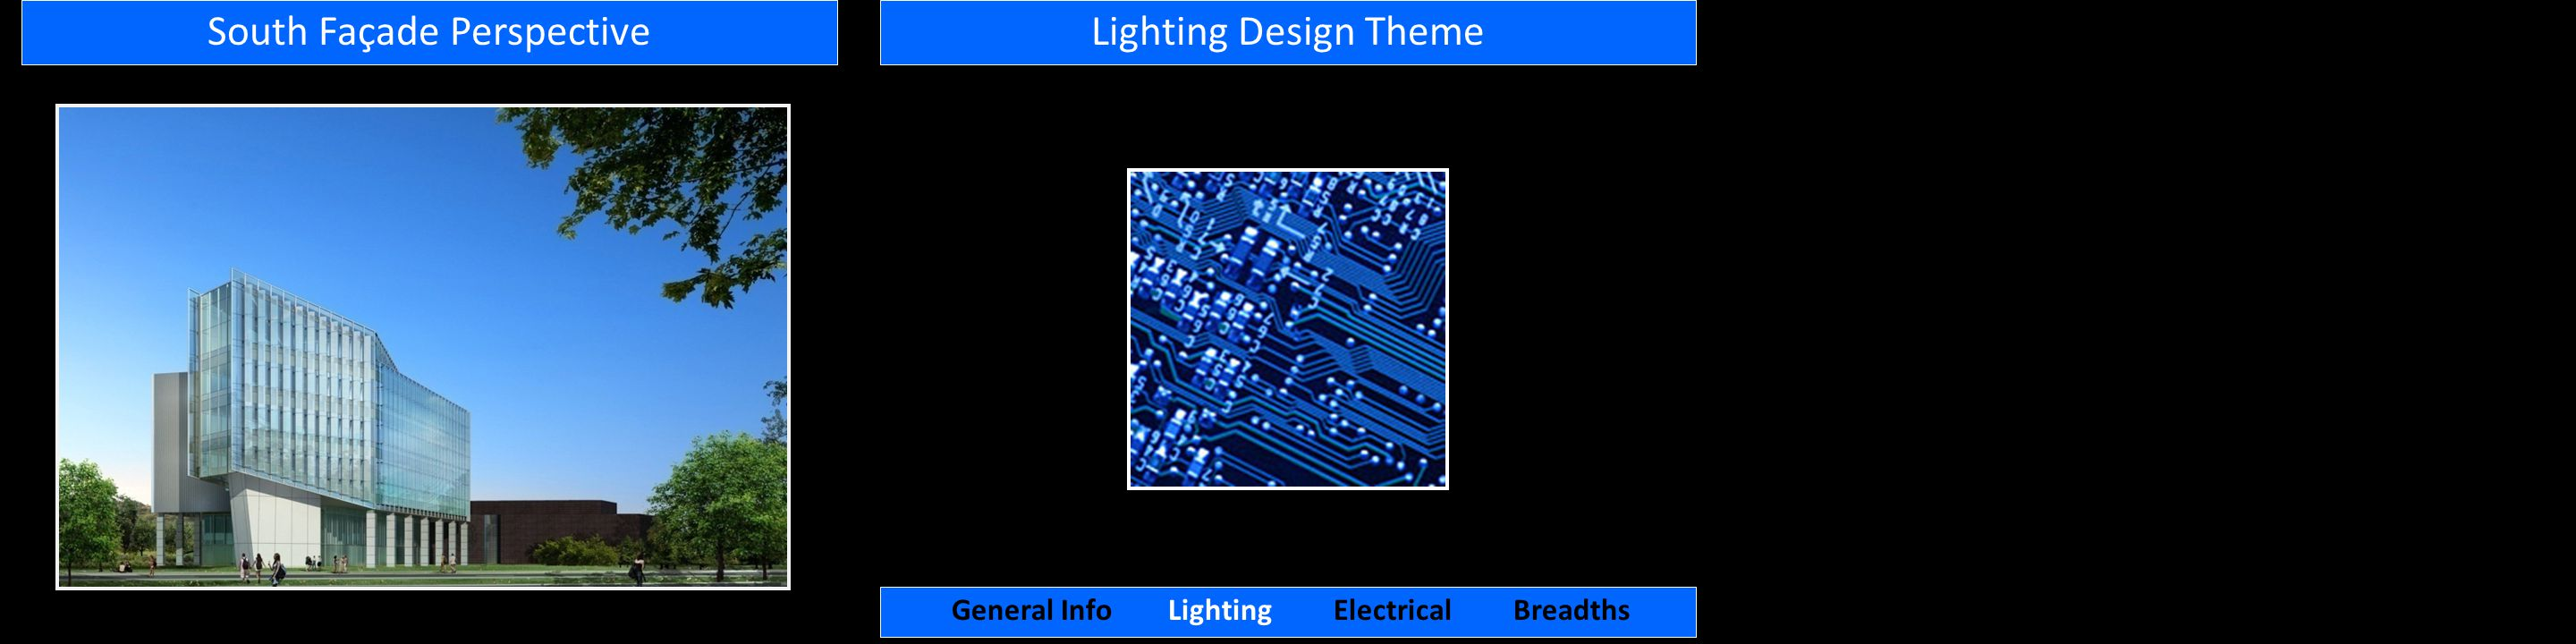 South Façade PerspectiveLighting Design Theme General Info Lighting Electrical Breadths